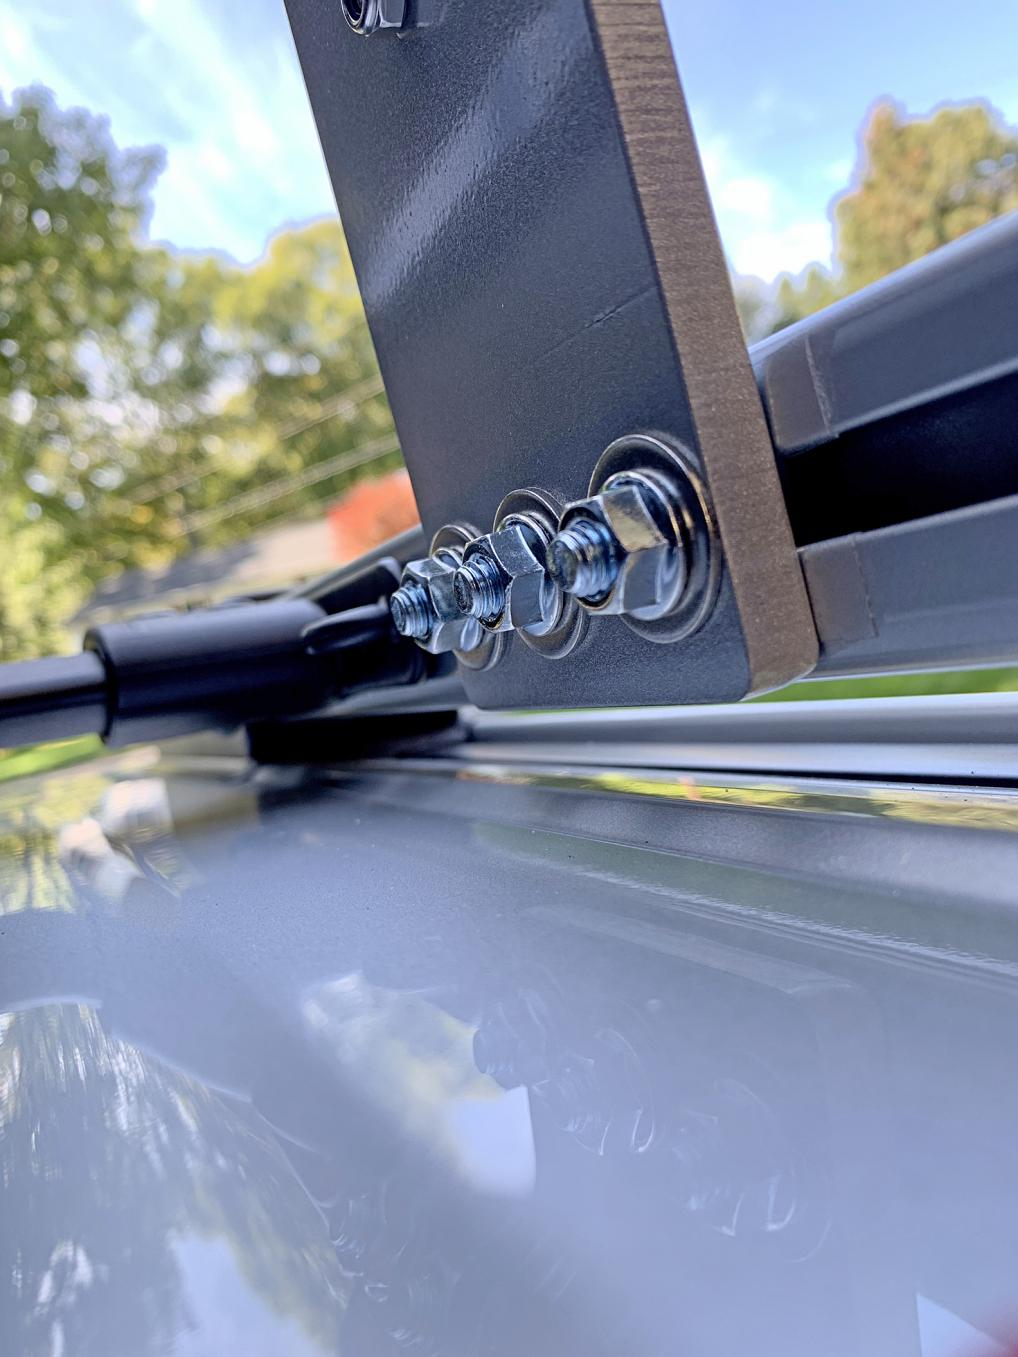 ARB type awning on factory roof rails/crossbars-img_0736-jpg